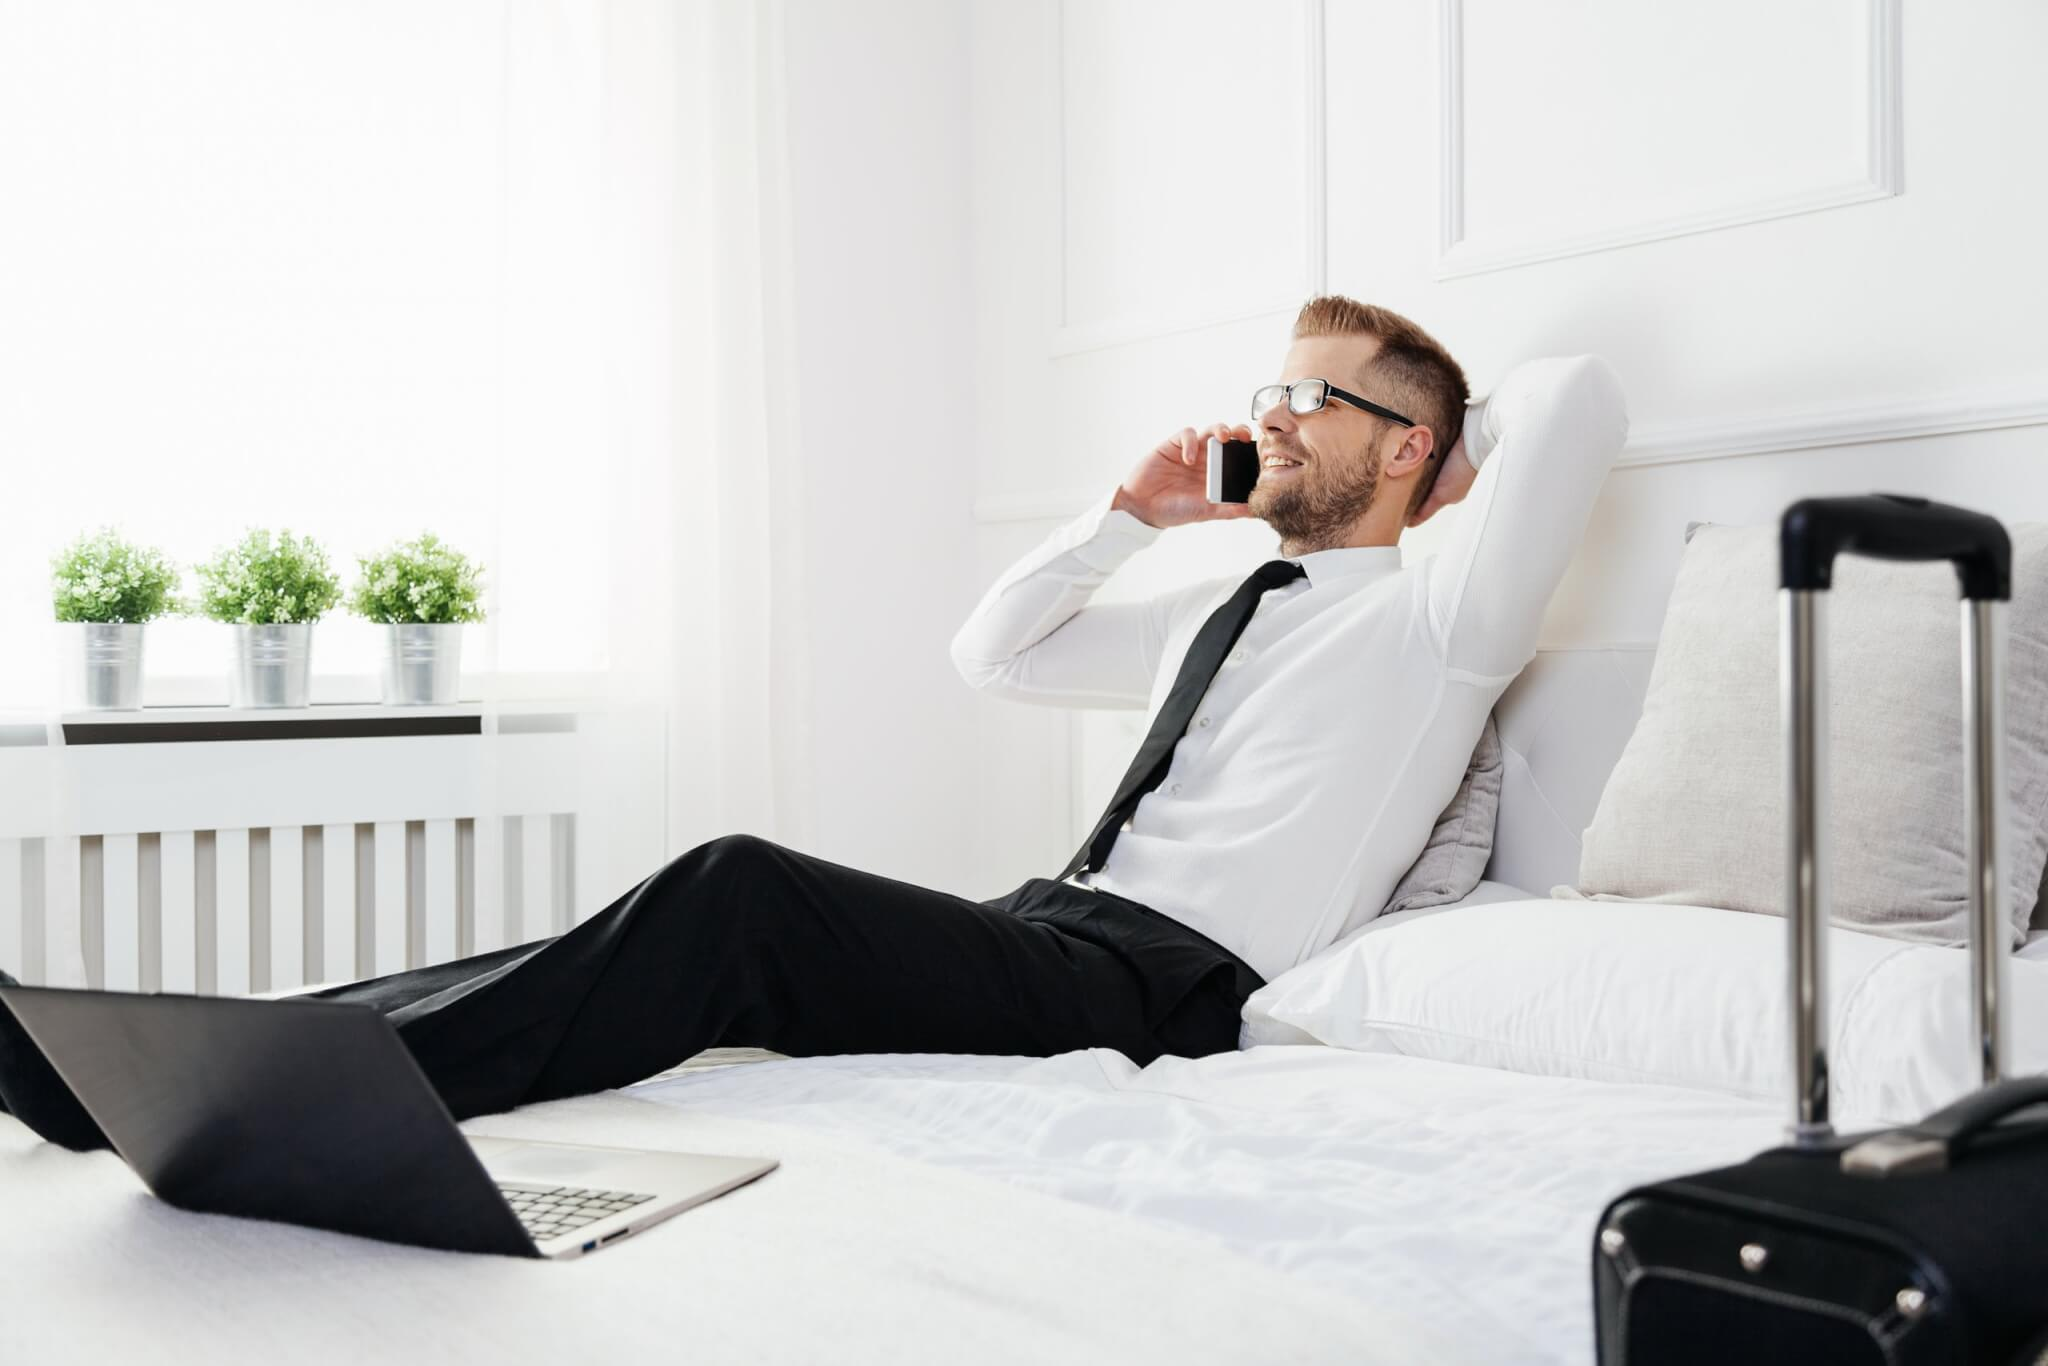 Make sure your short-term rentals appeal to business travellers